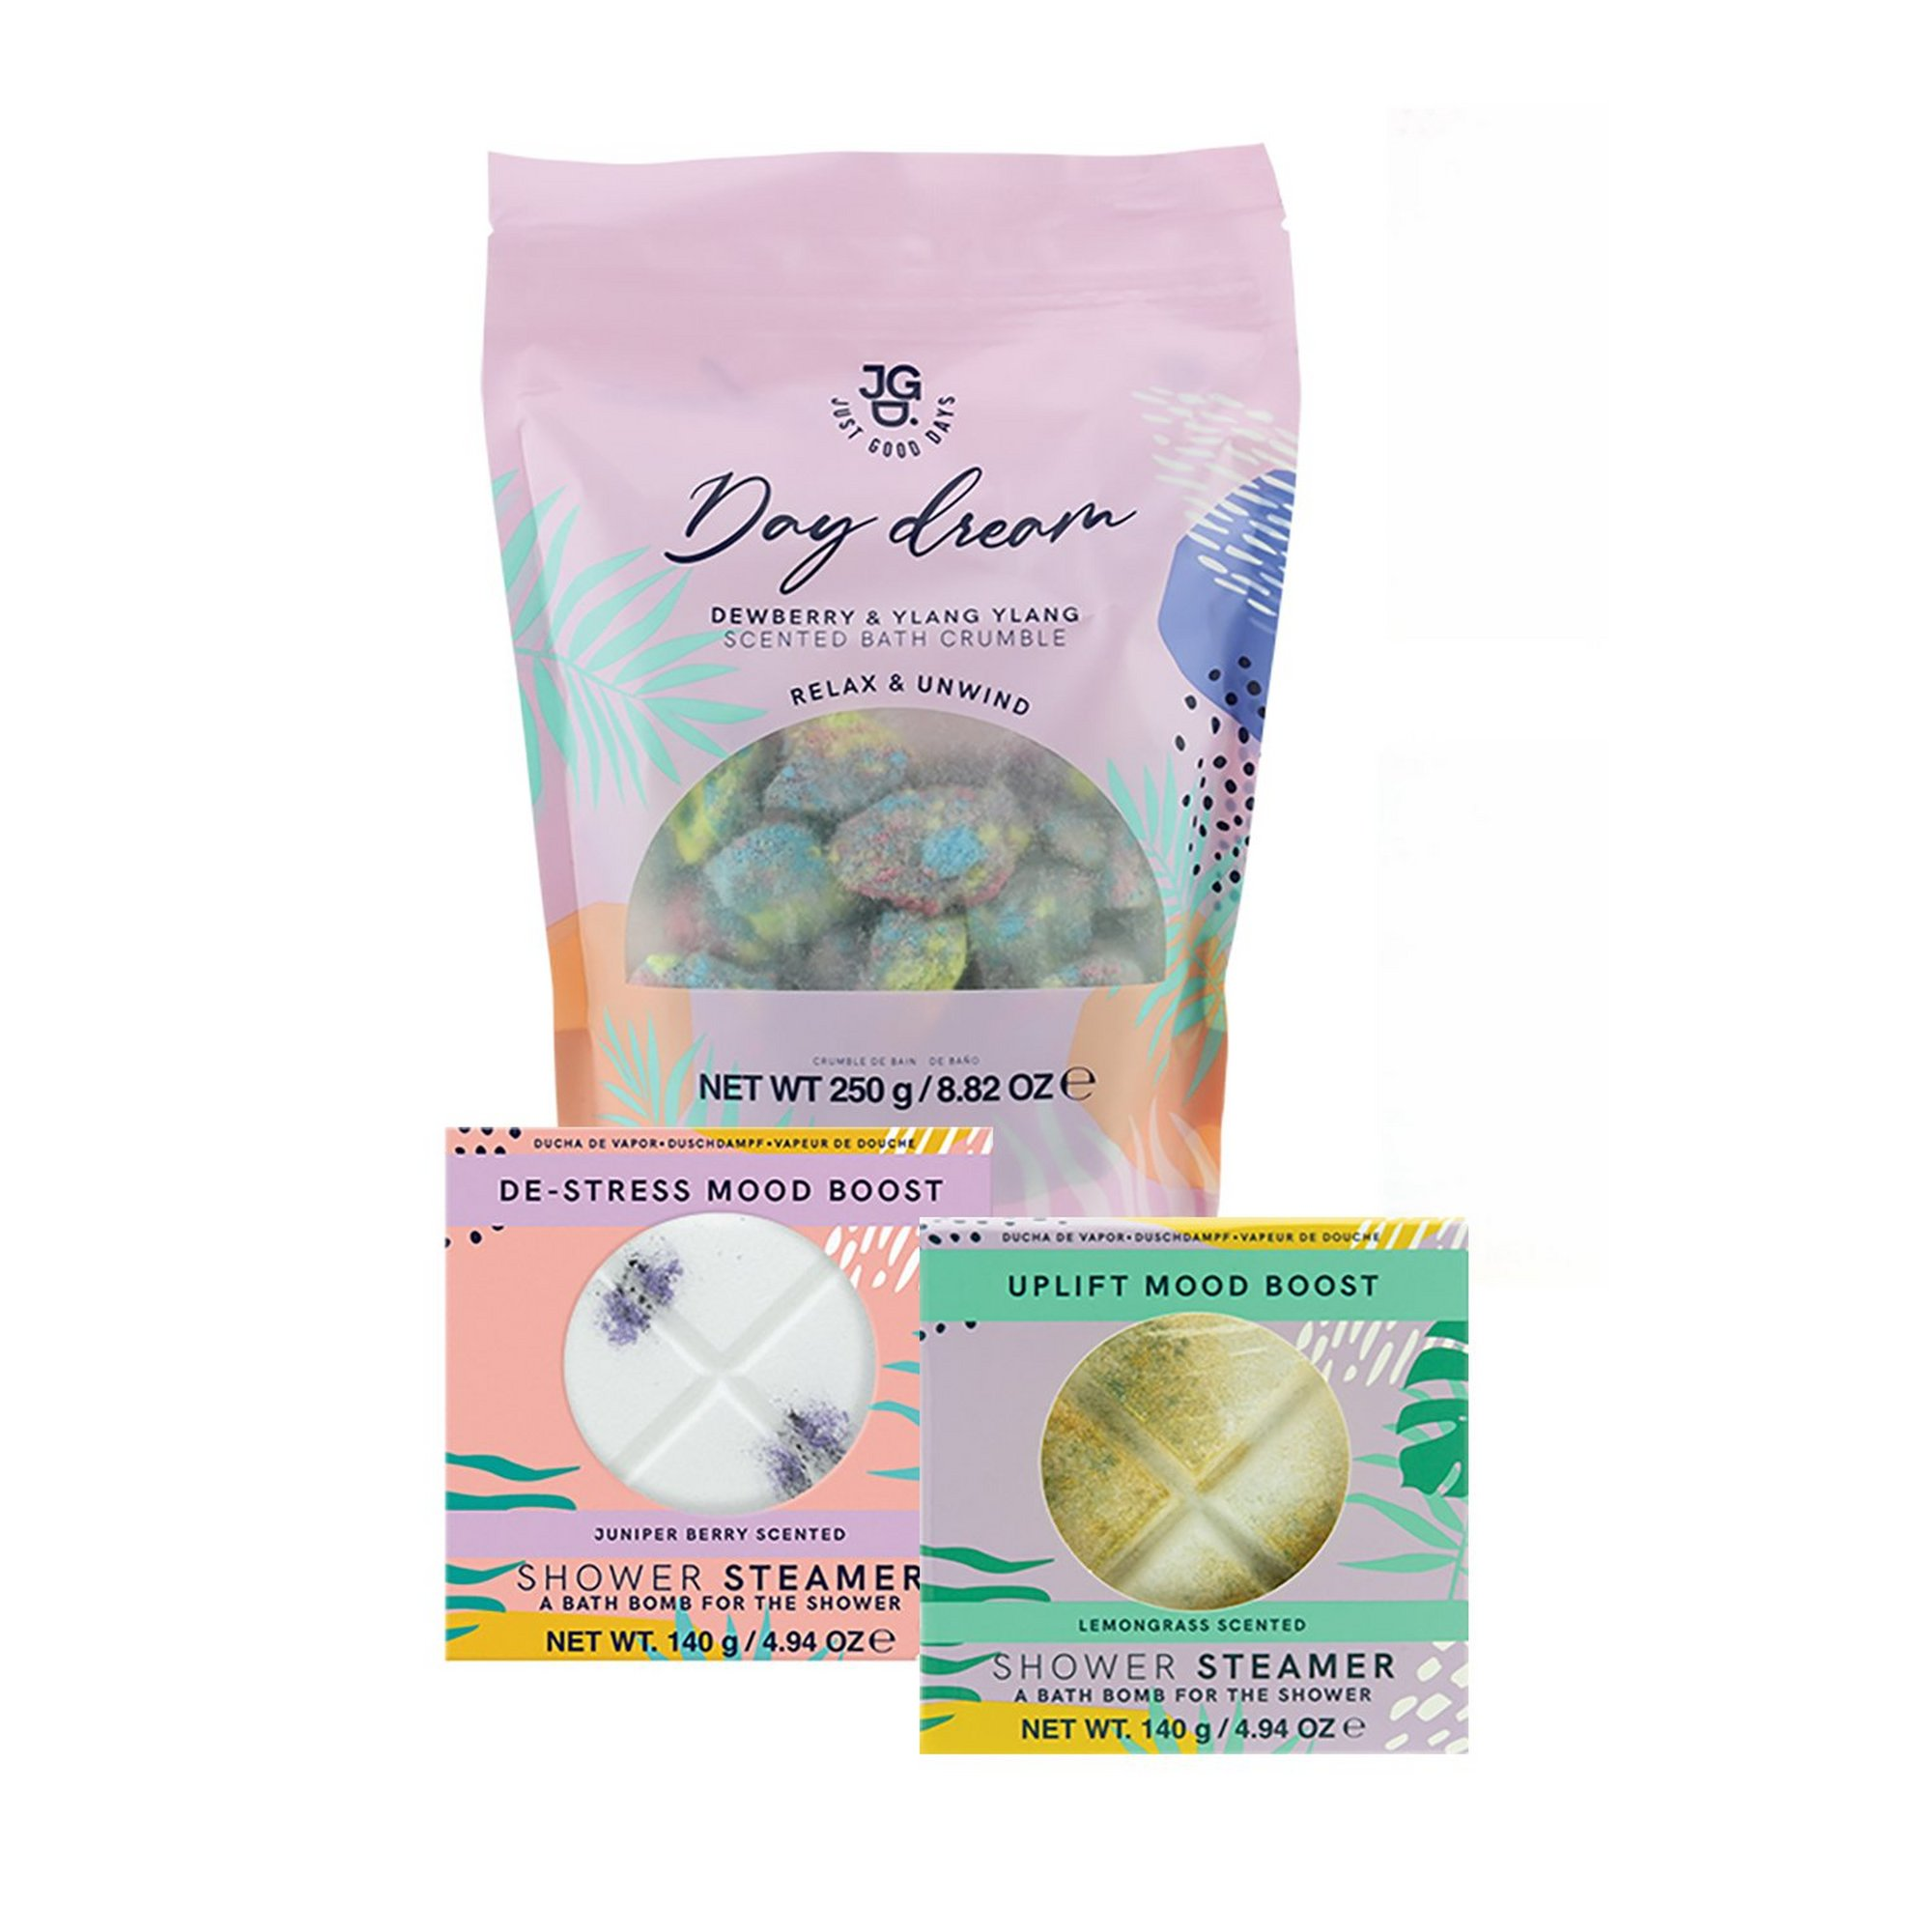 Image of Just Good Days Bath Crumble and Shower Steamer Bundle